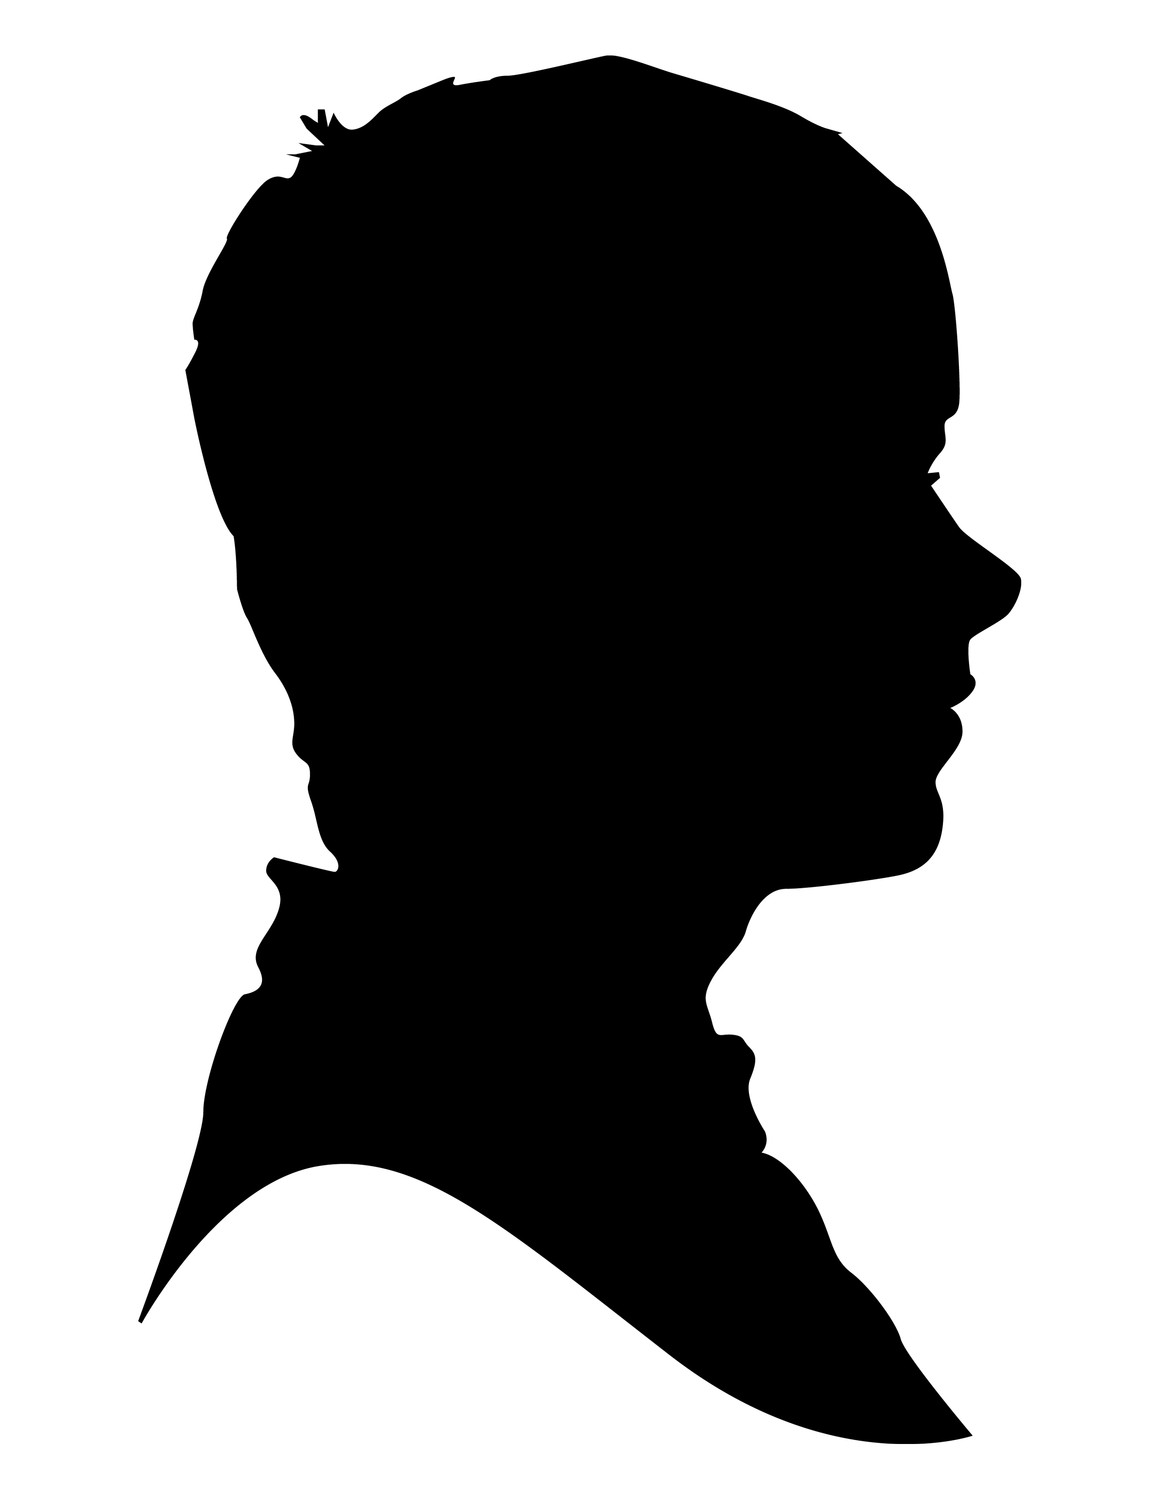 Male Silhouette Outline at GetDrawings.com | Free for personal use ...